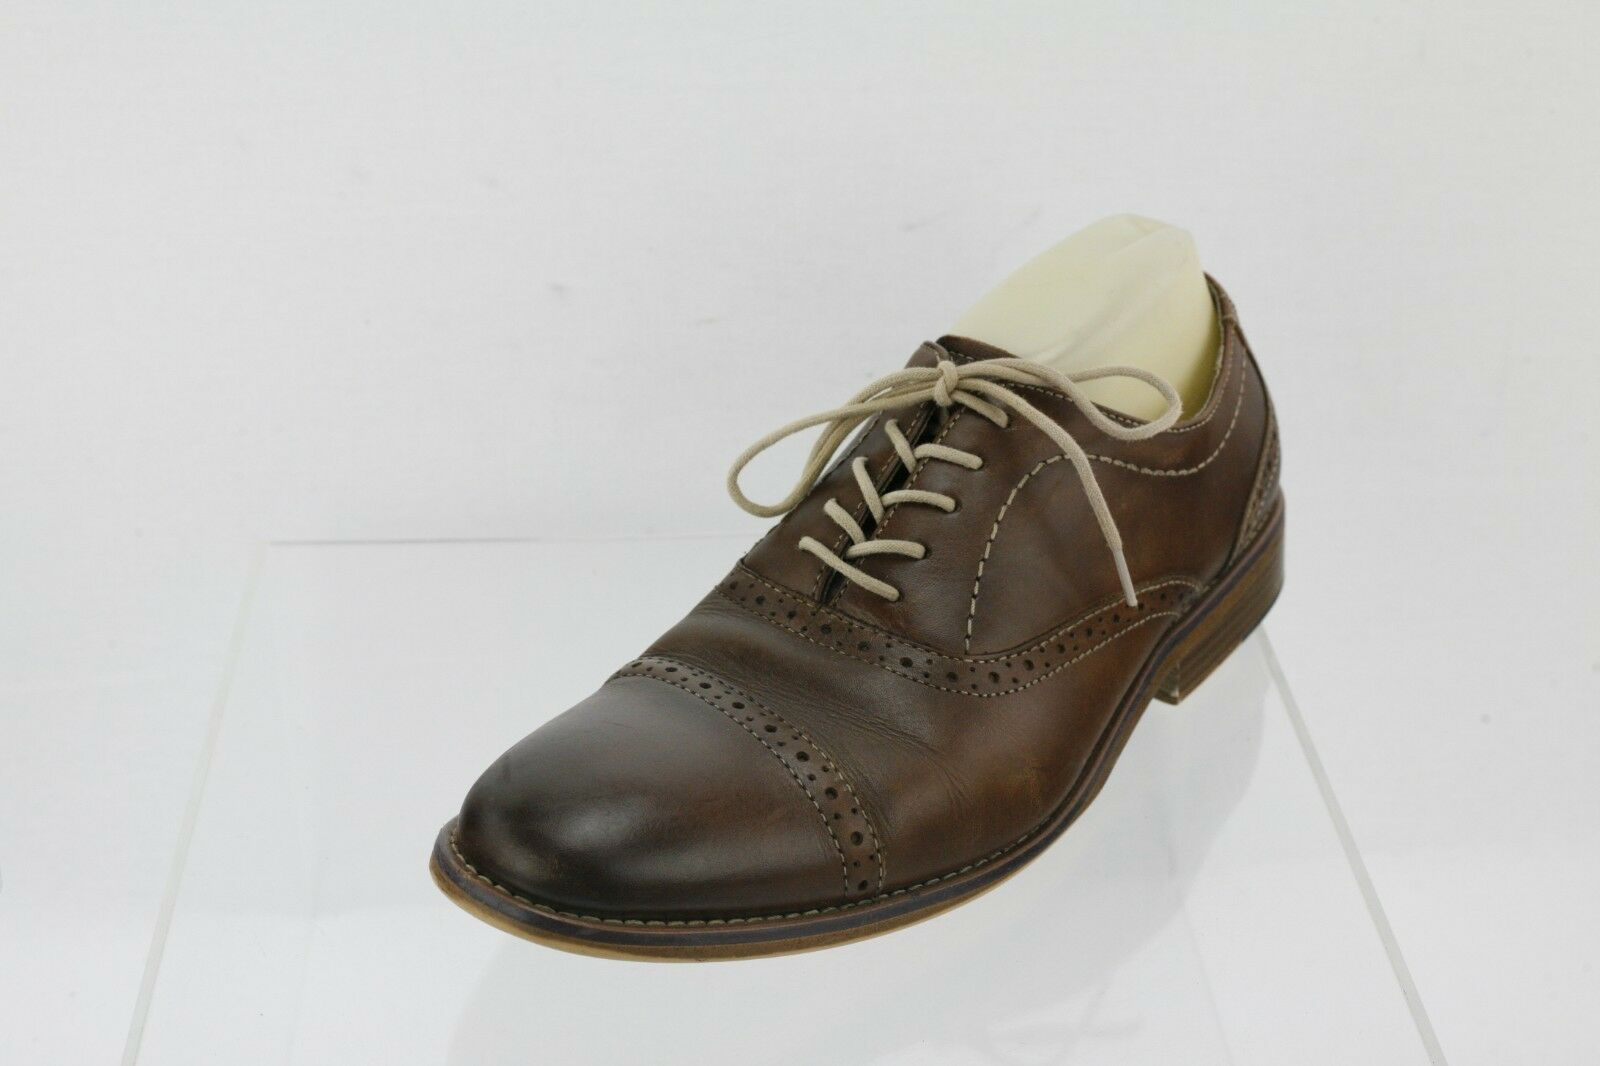 Men's Bass 70-10132 Brown Lace-up Formal Oxford shoes Size 9 M